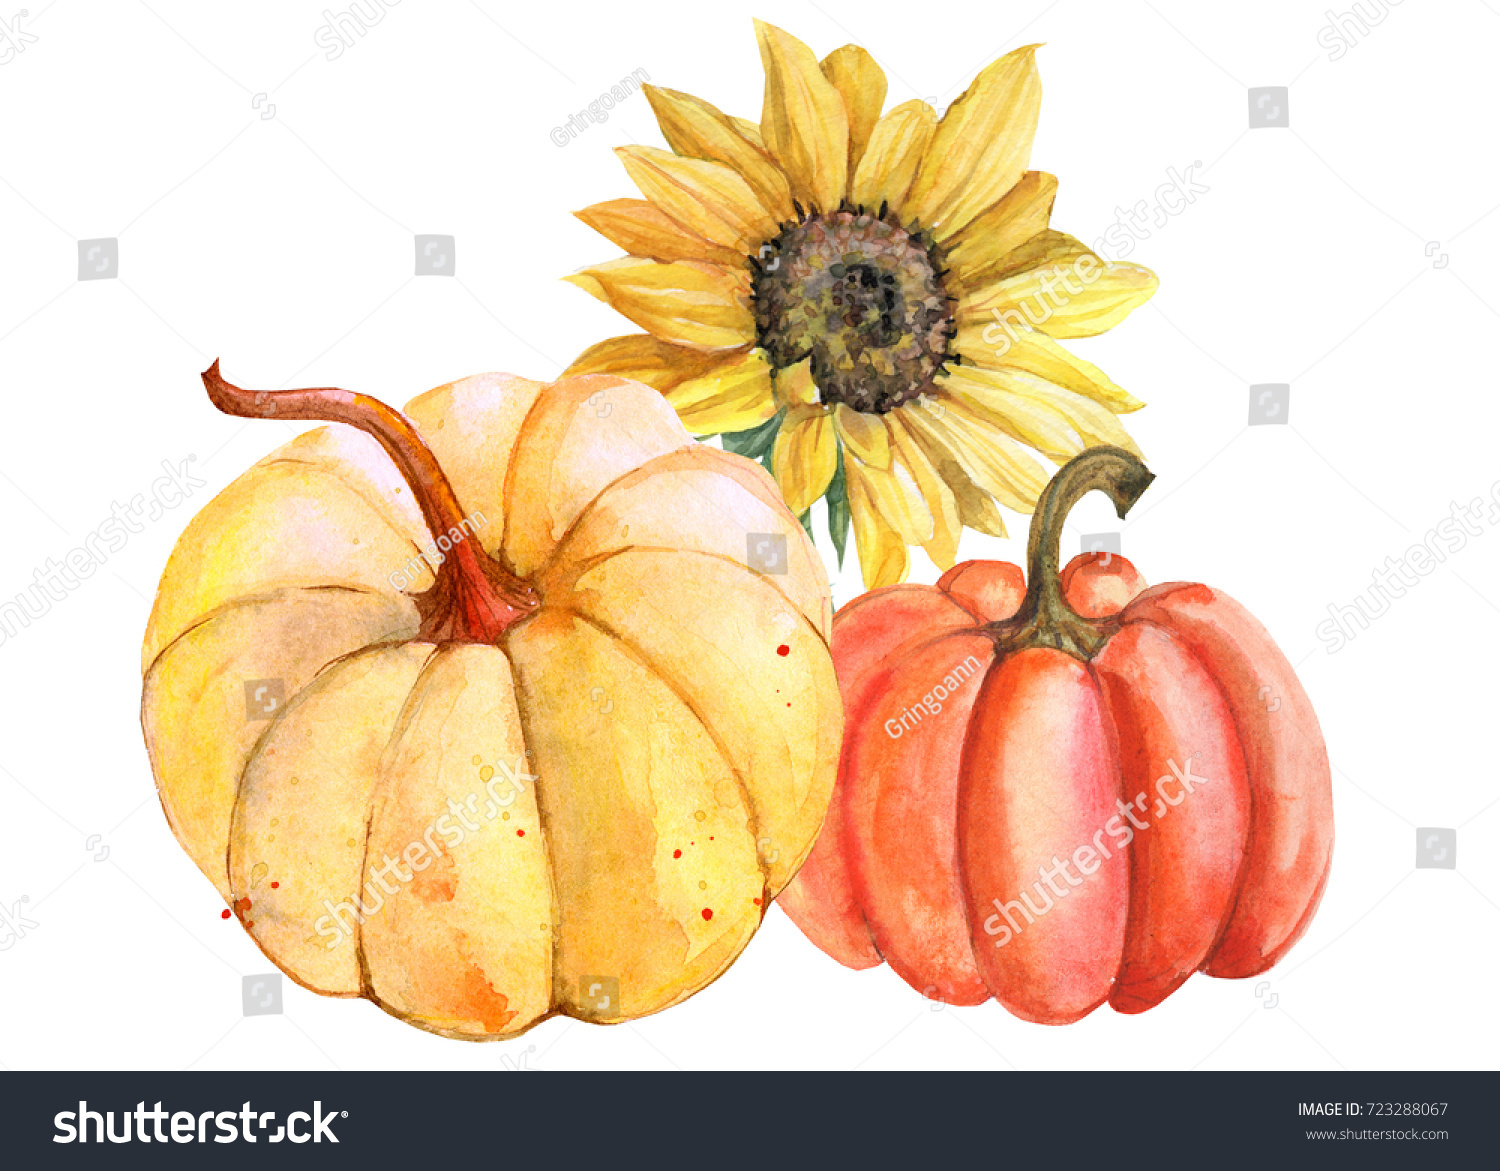 Autumn Composition Of Sunflowers Yellow And Orange Pumpkins Watercolor Botanical Illustration Postcard